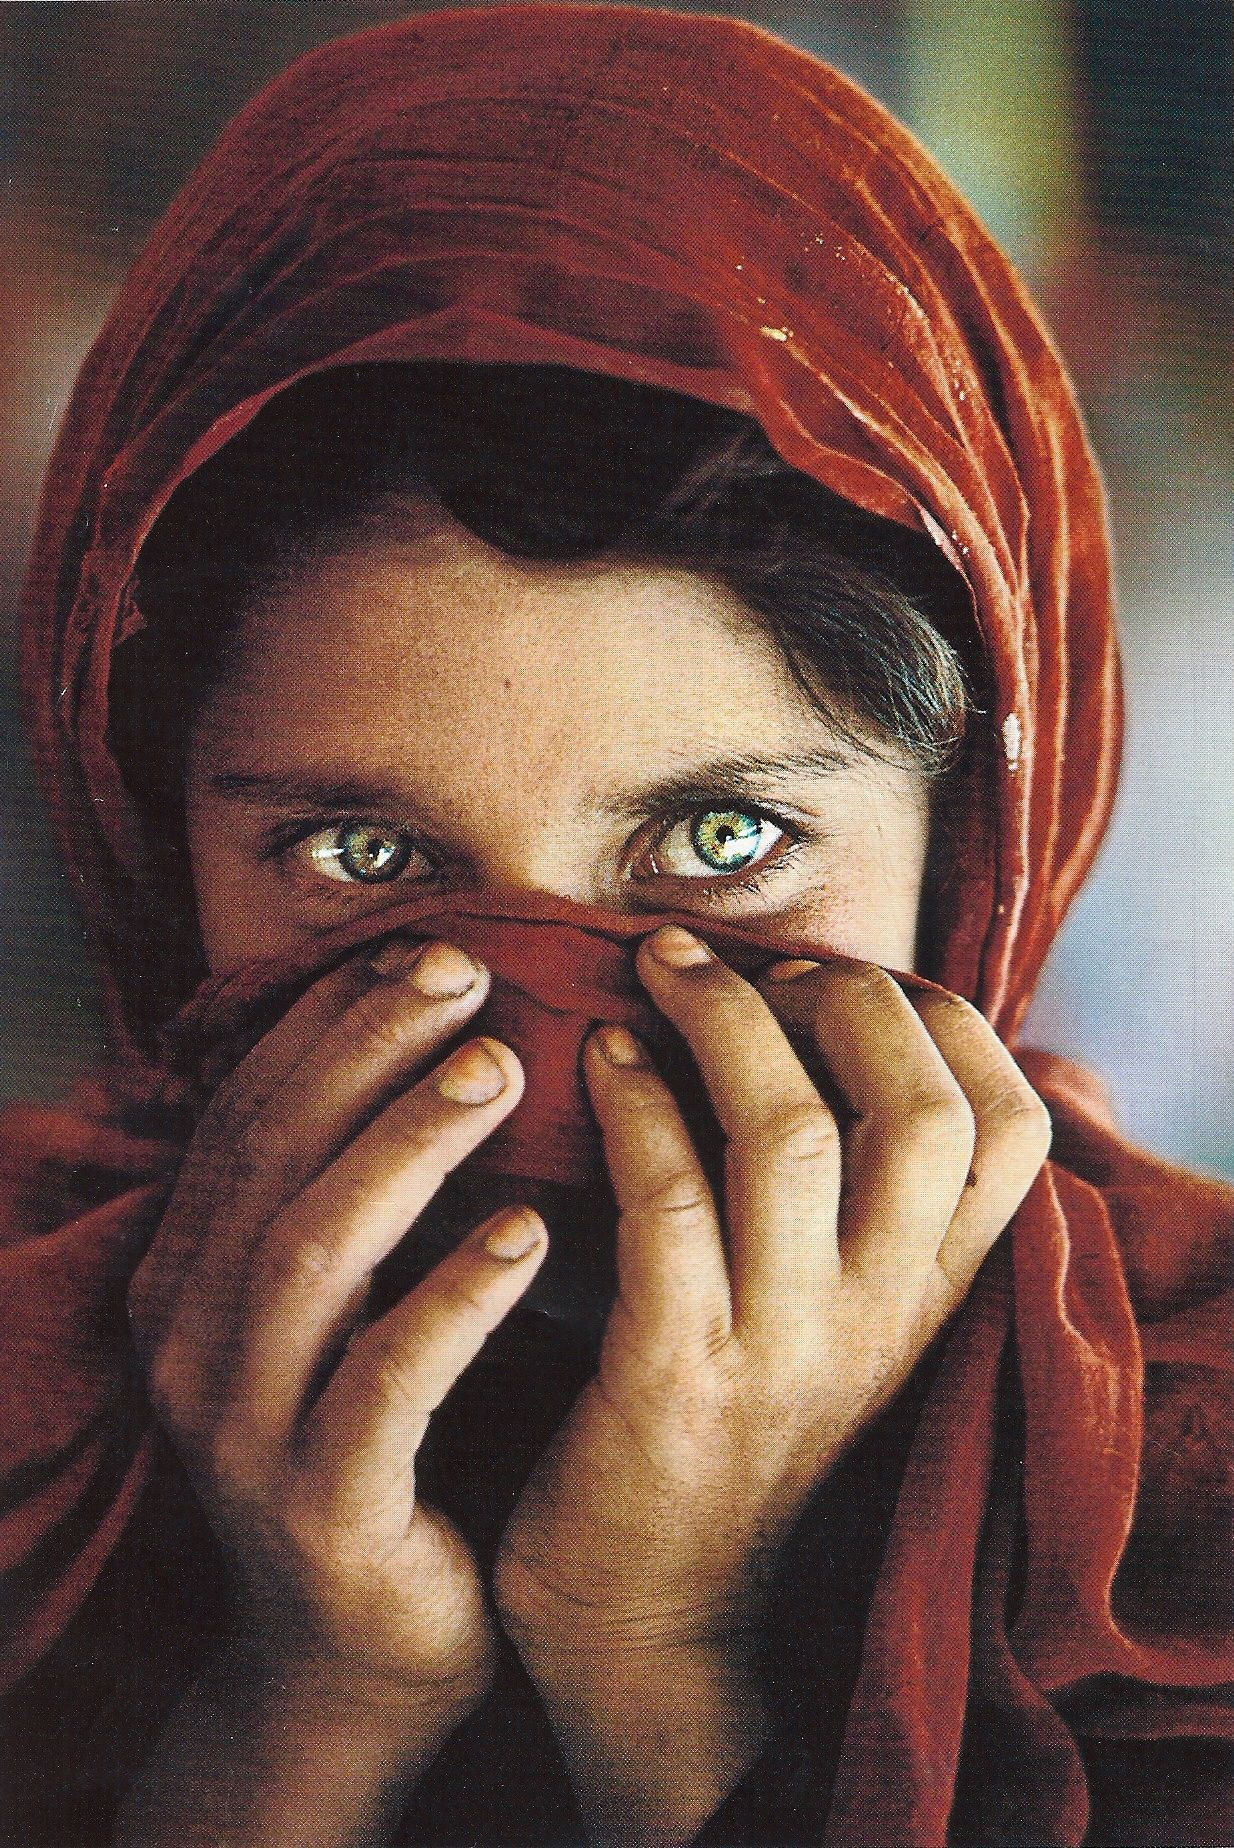 Buy Beautiful Most eyes national geographic pictures trends